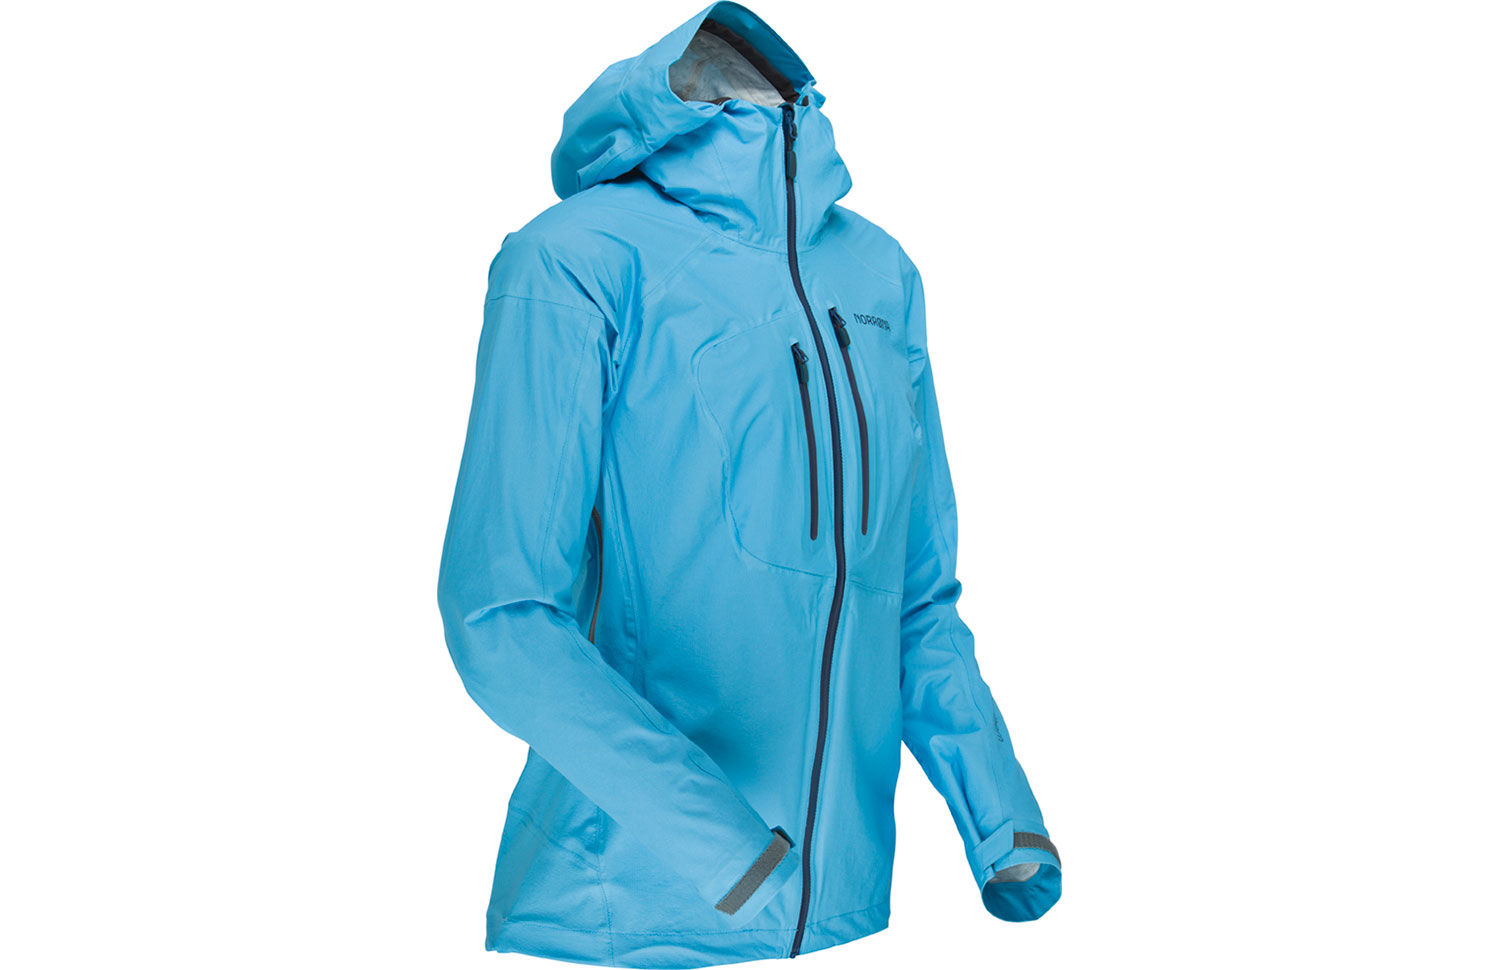 bitithorn waterproof jacket for women